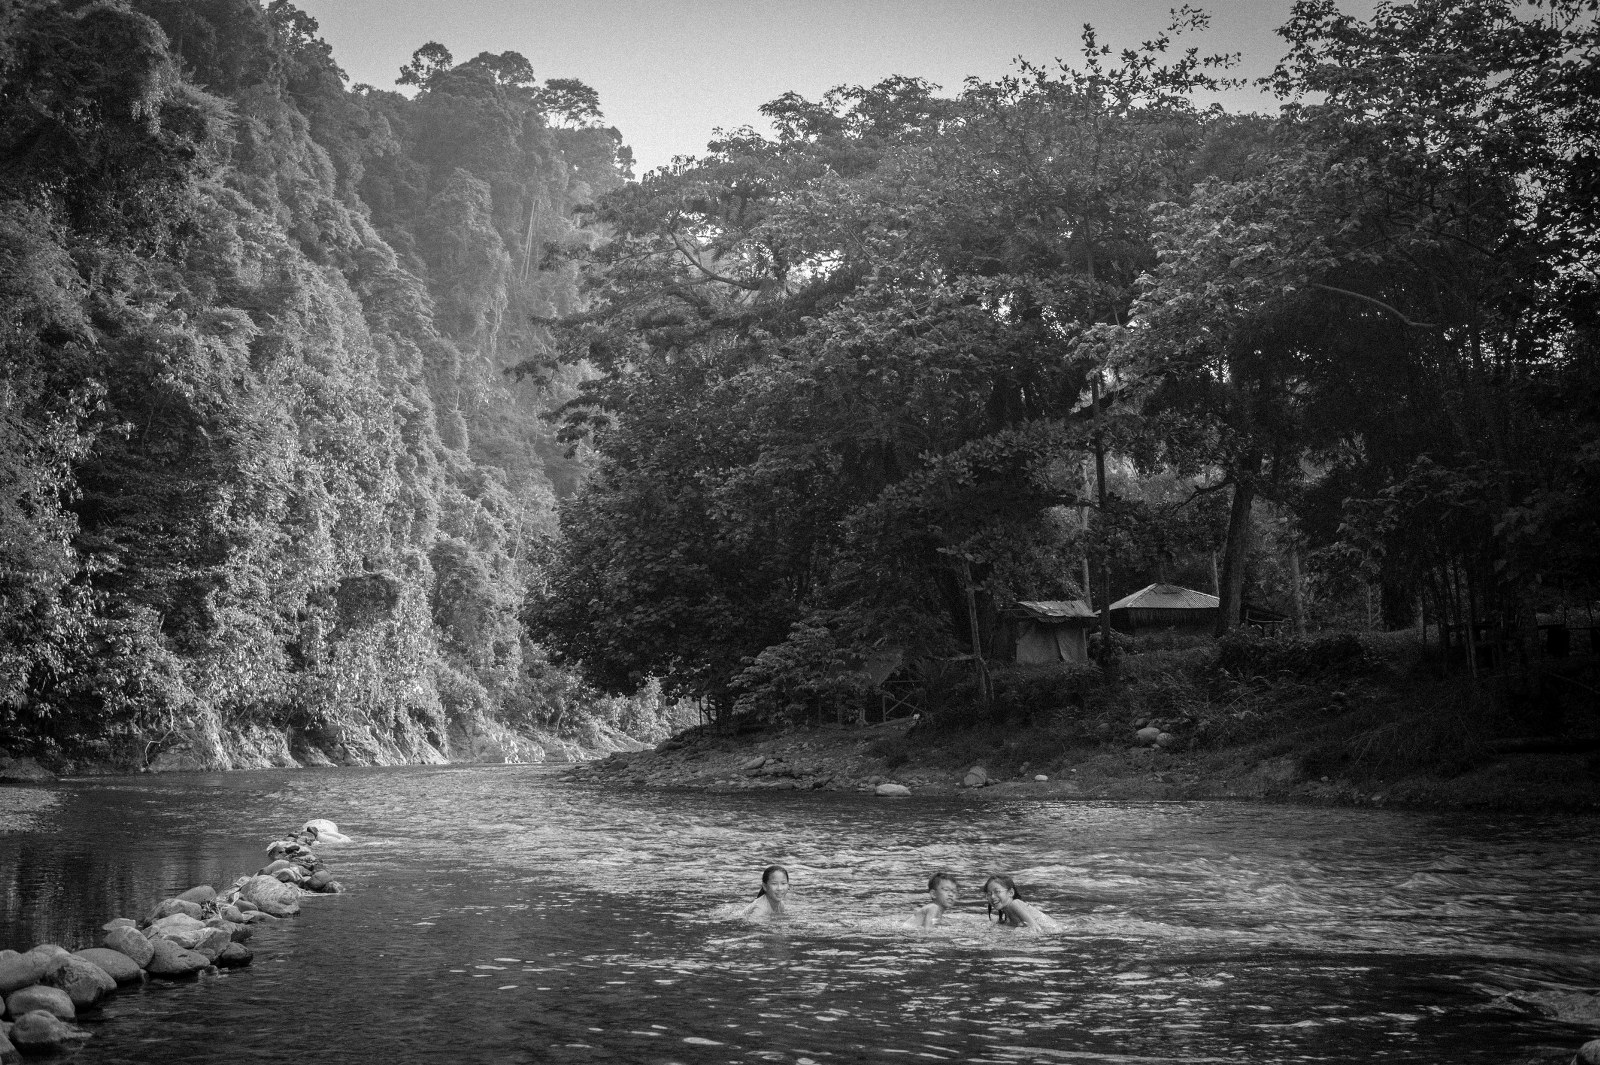 Or soaking in cold jungle rivers.